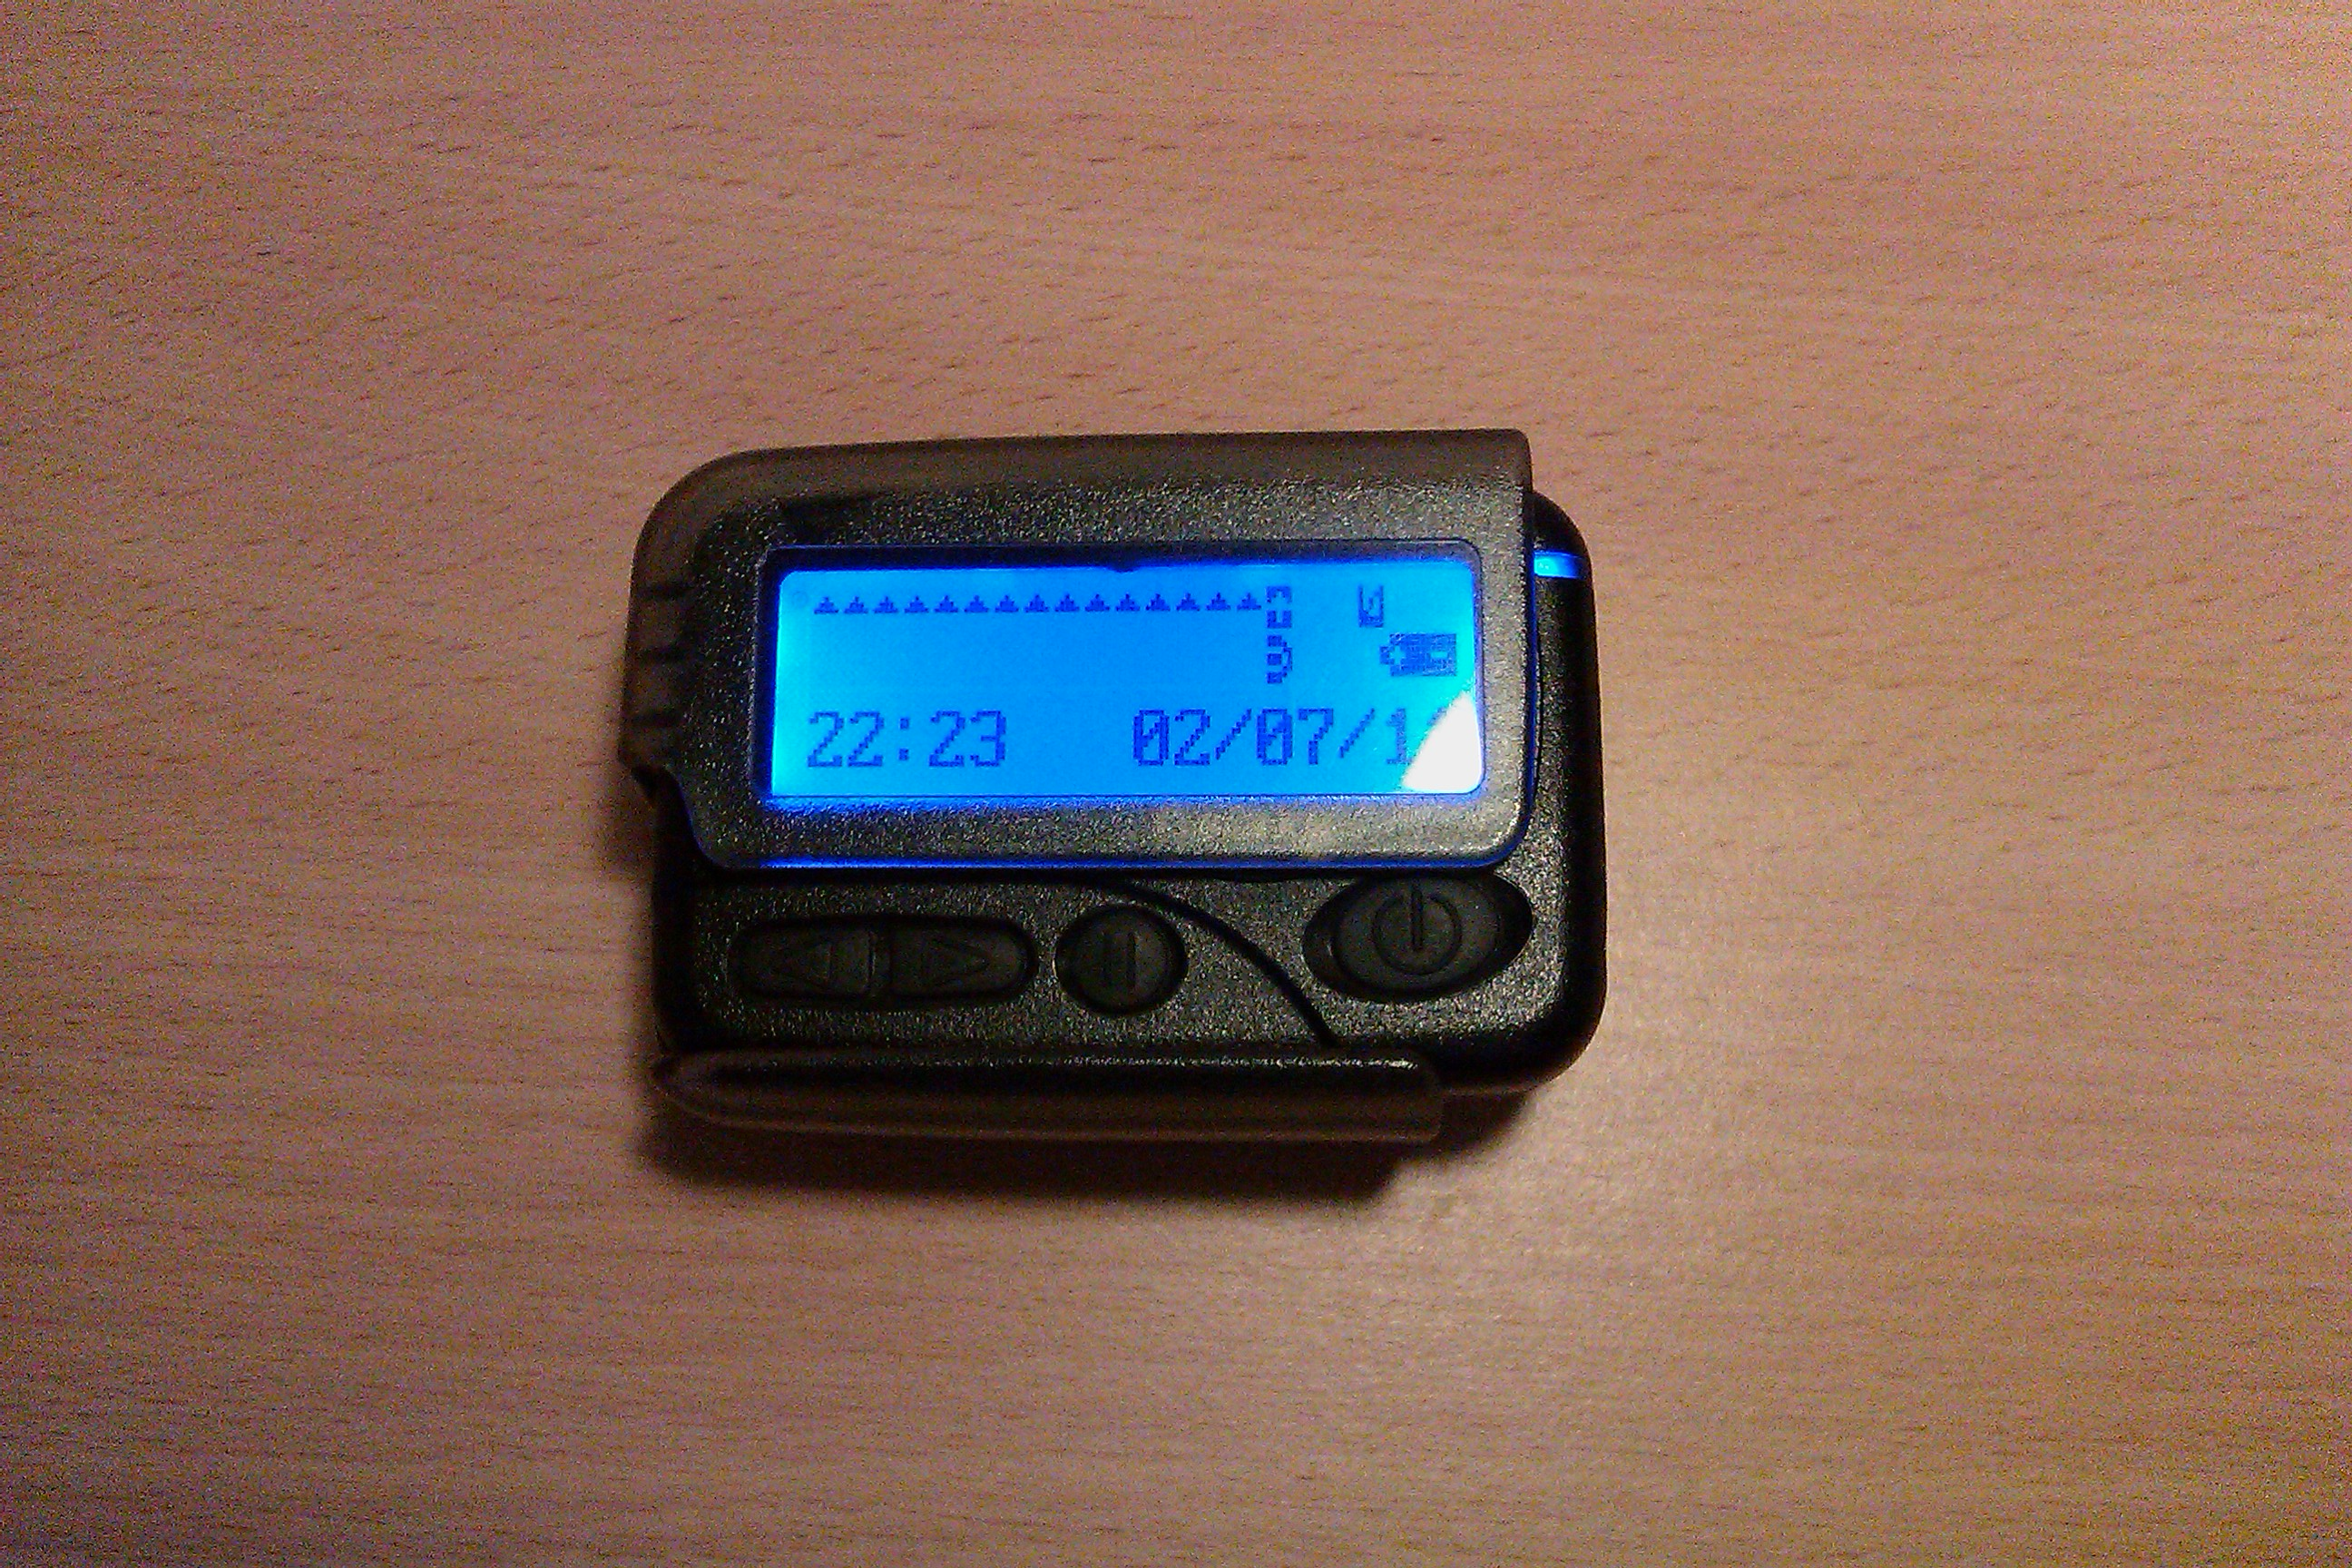 File:Galaxy pager (P2000).jpg - Wikimedia Commons